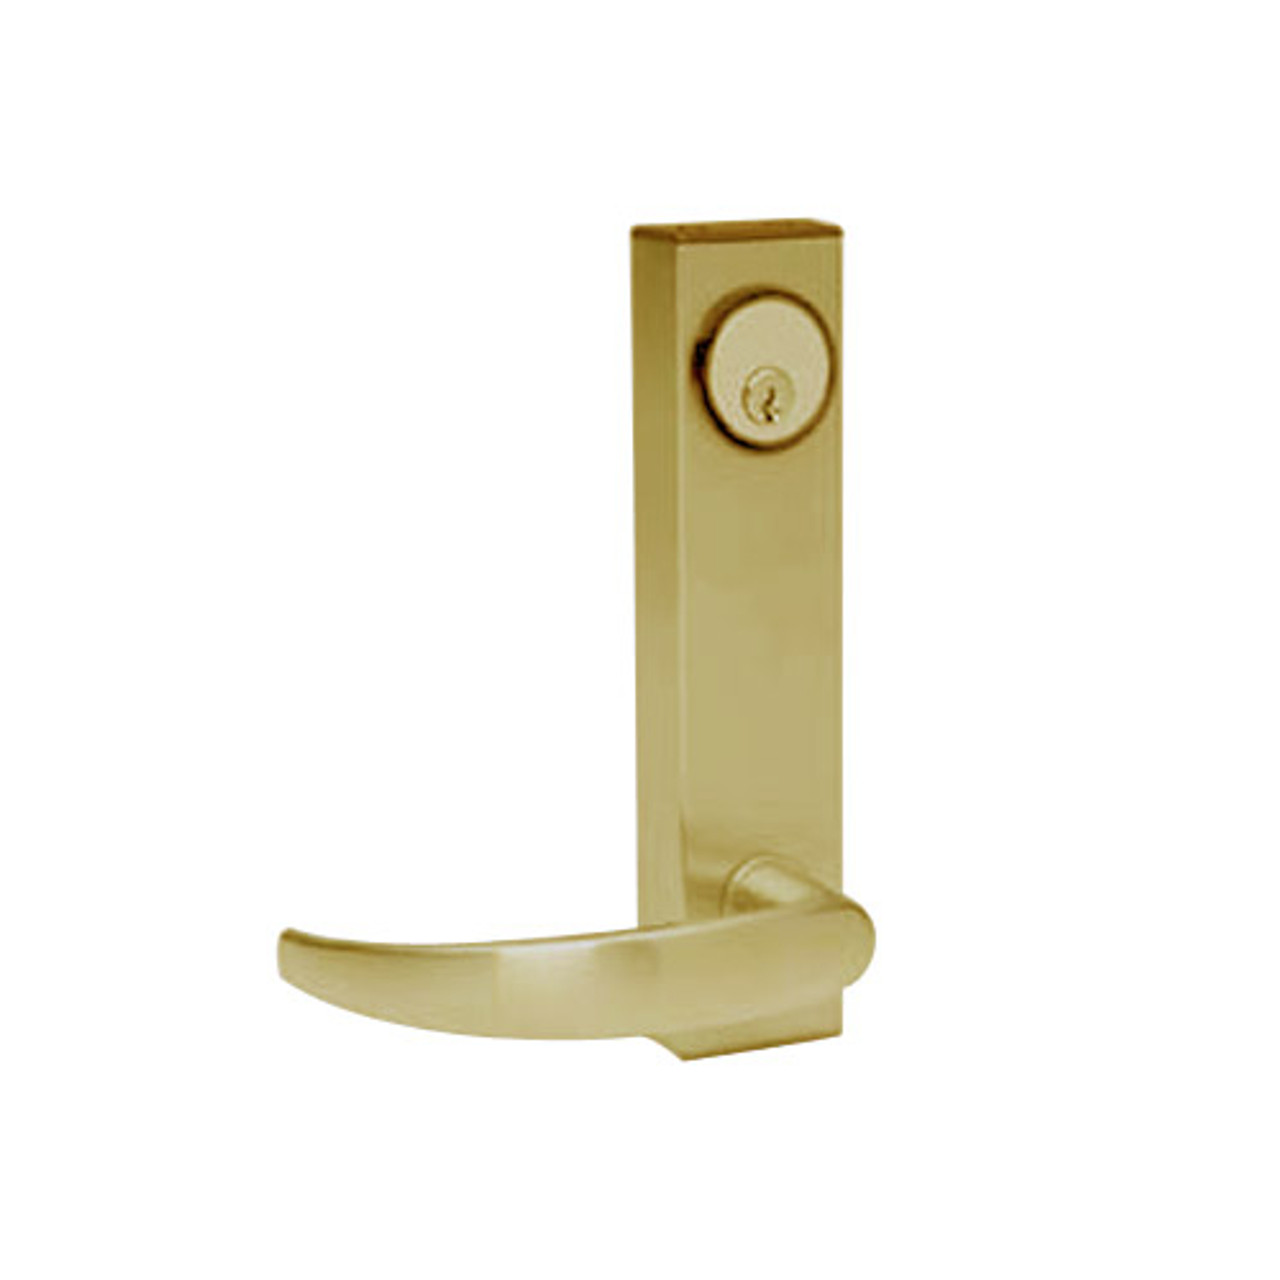 3080-01-0-93-US4 Adams Rite Standard Entry Trim with Curve Lever in Satin Brass Finish